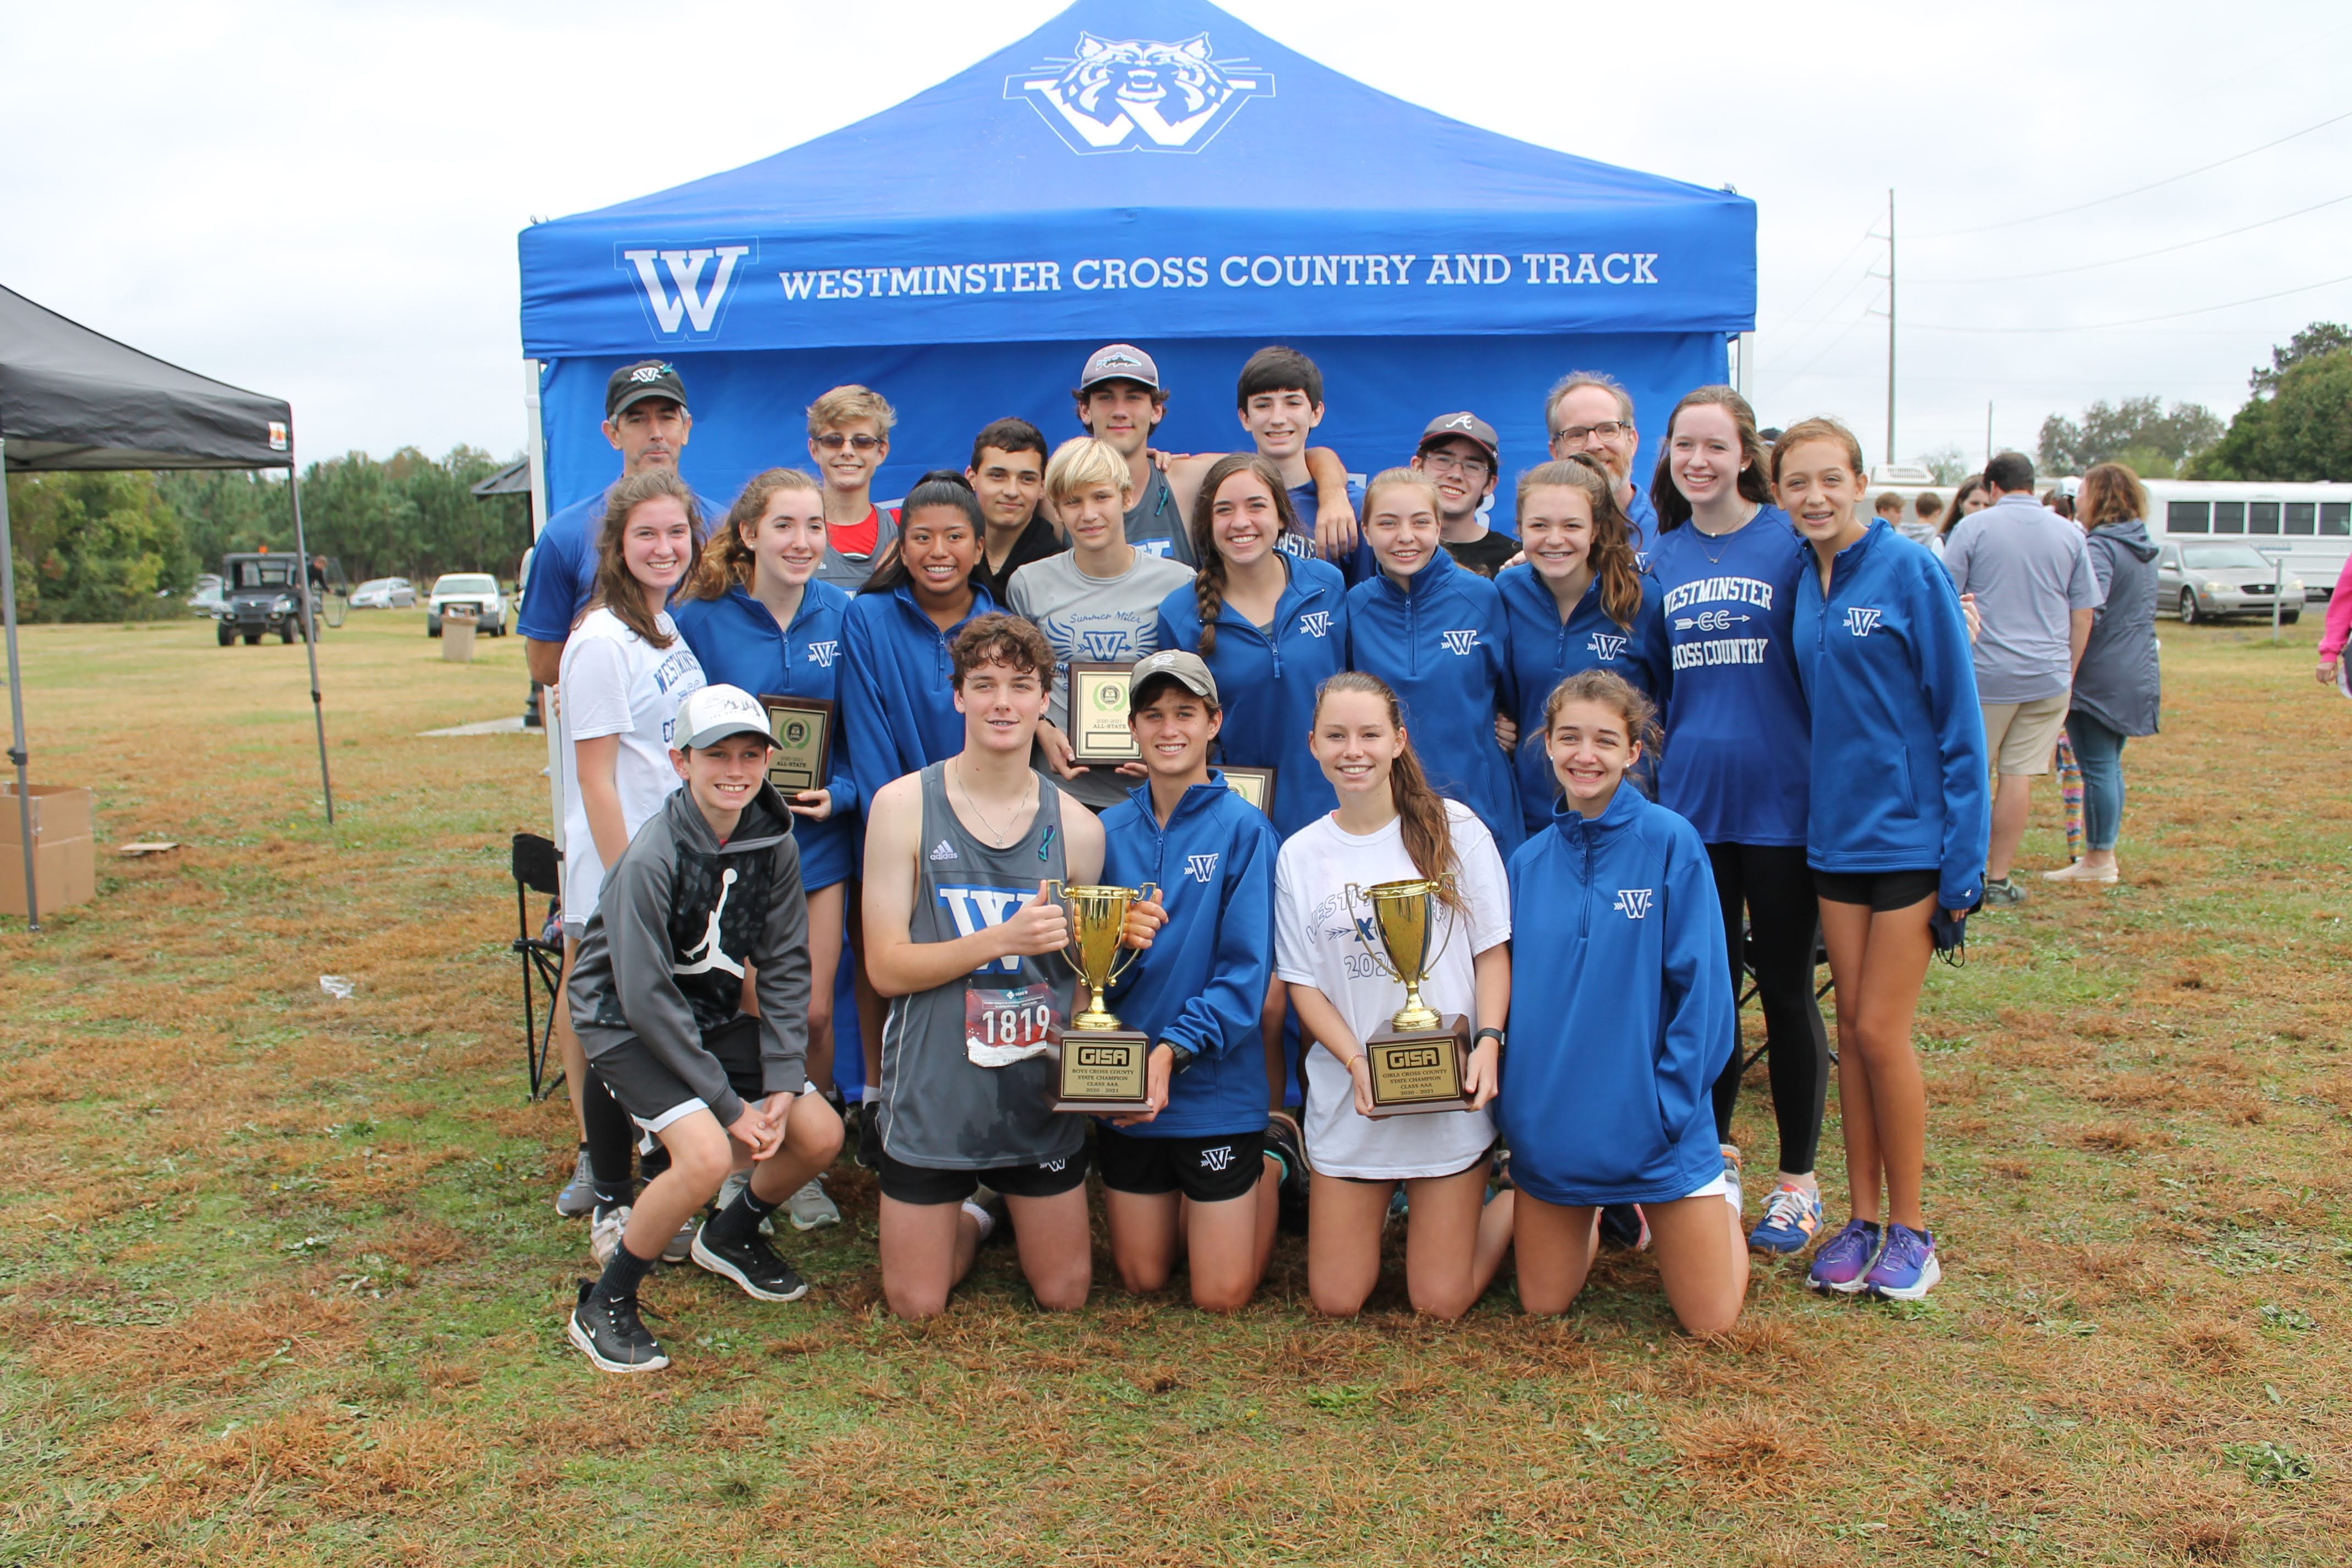 Athletics Photo: 2020 Boys & Girls Cross Country State Champions | Westminster